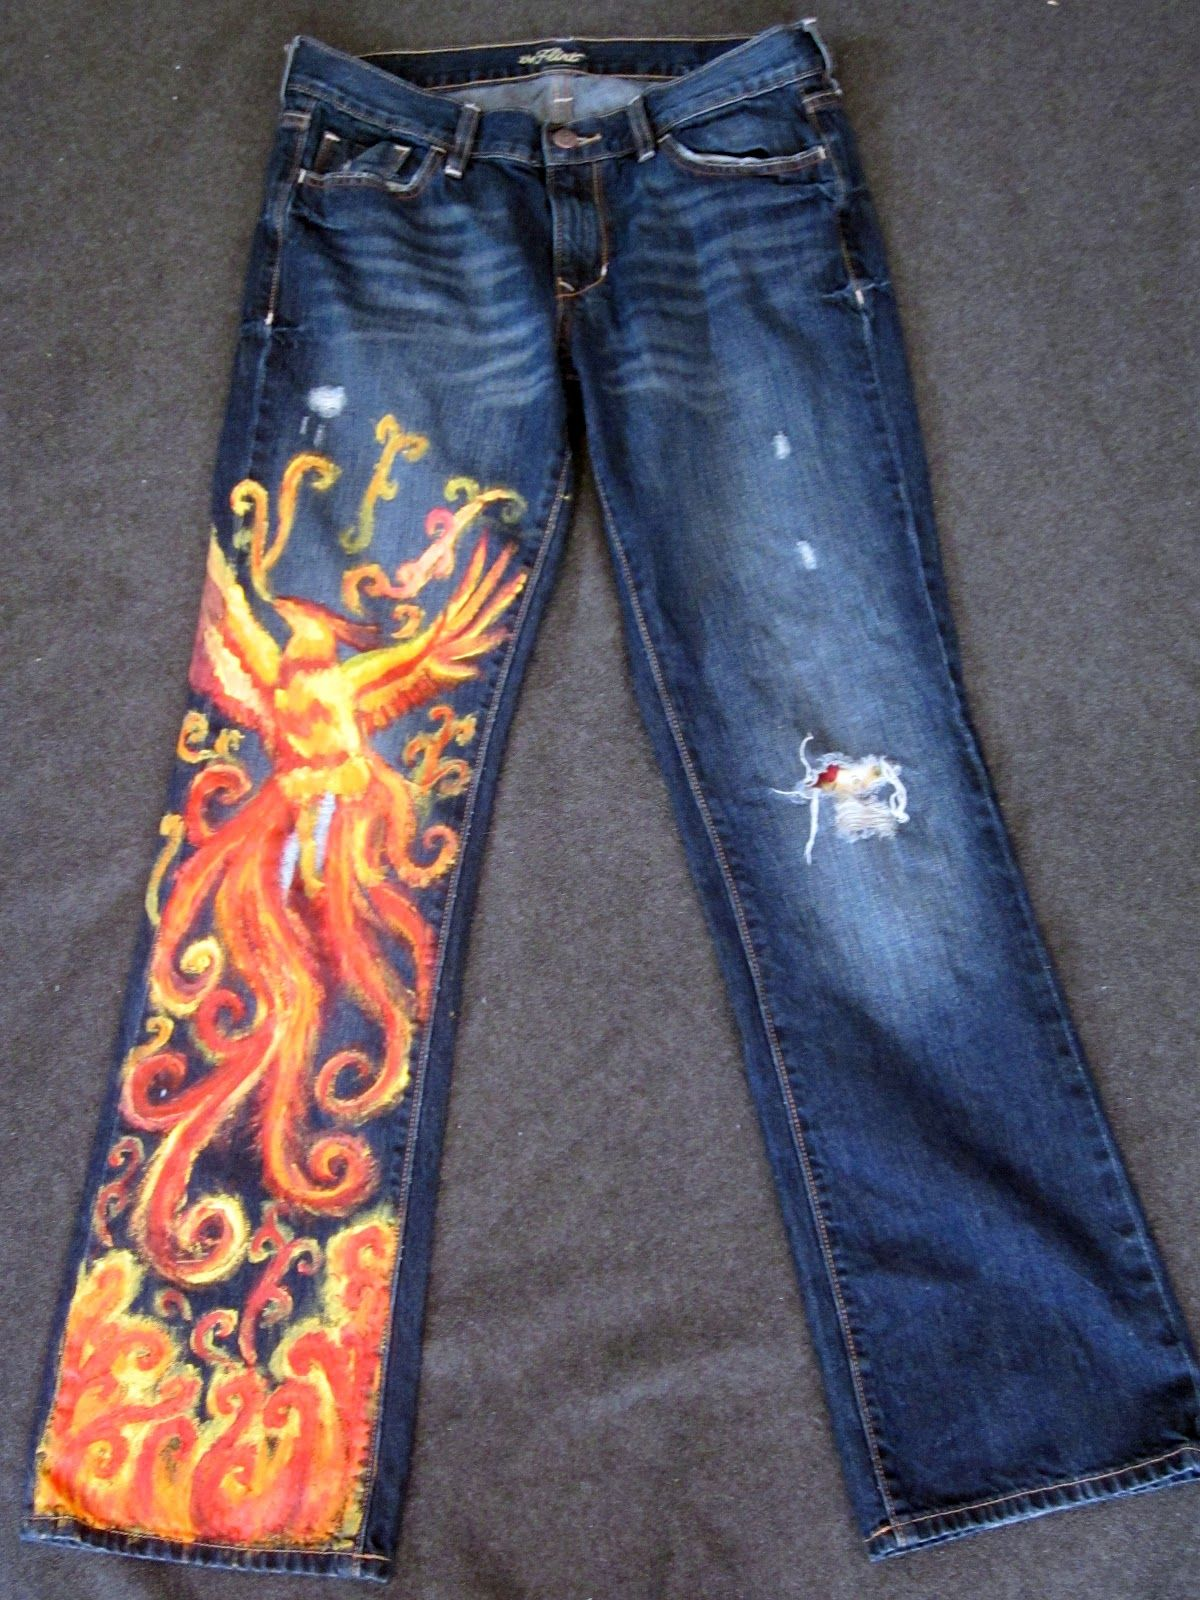 An easy way to customize your jeans painted jeans